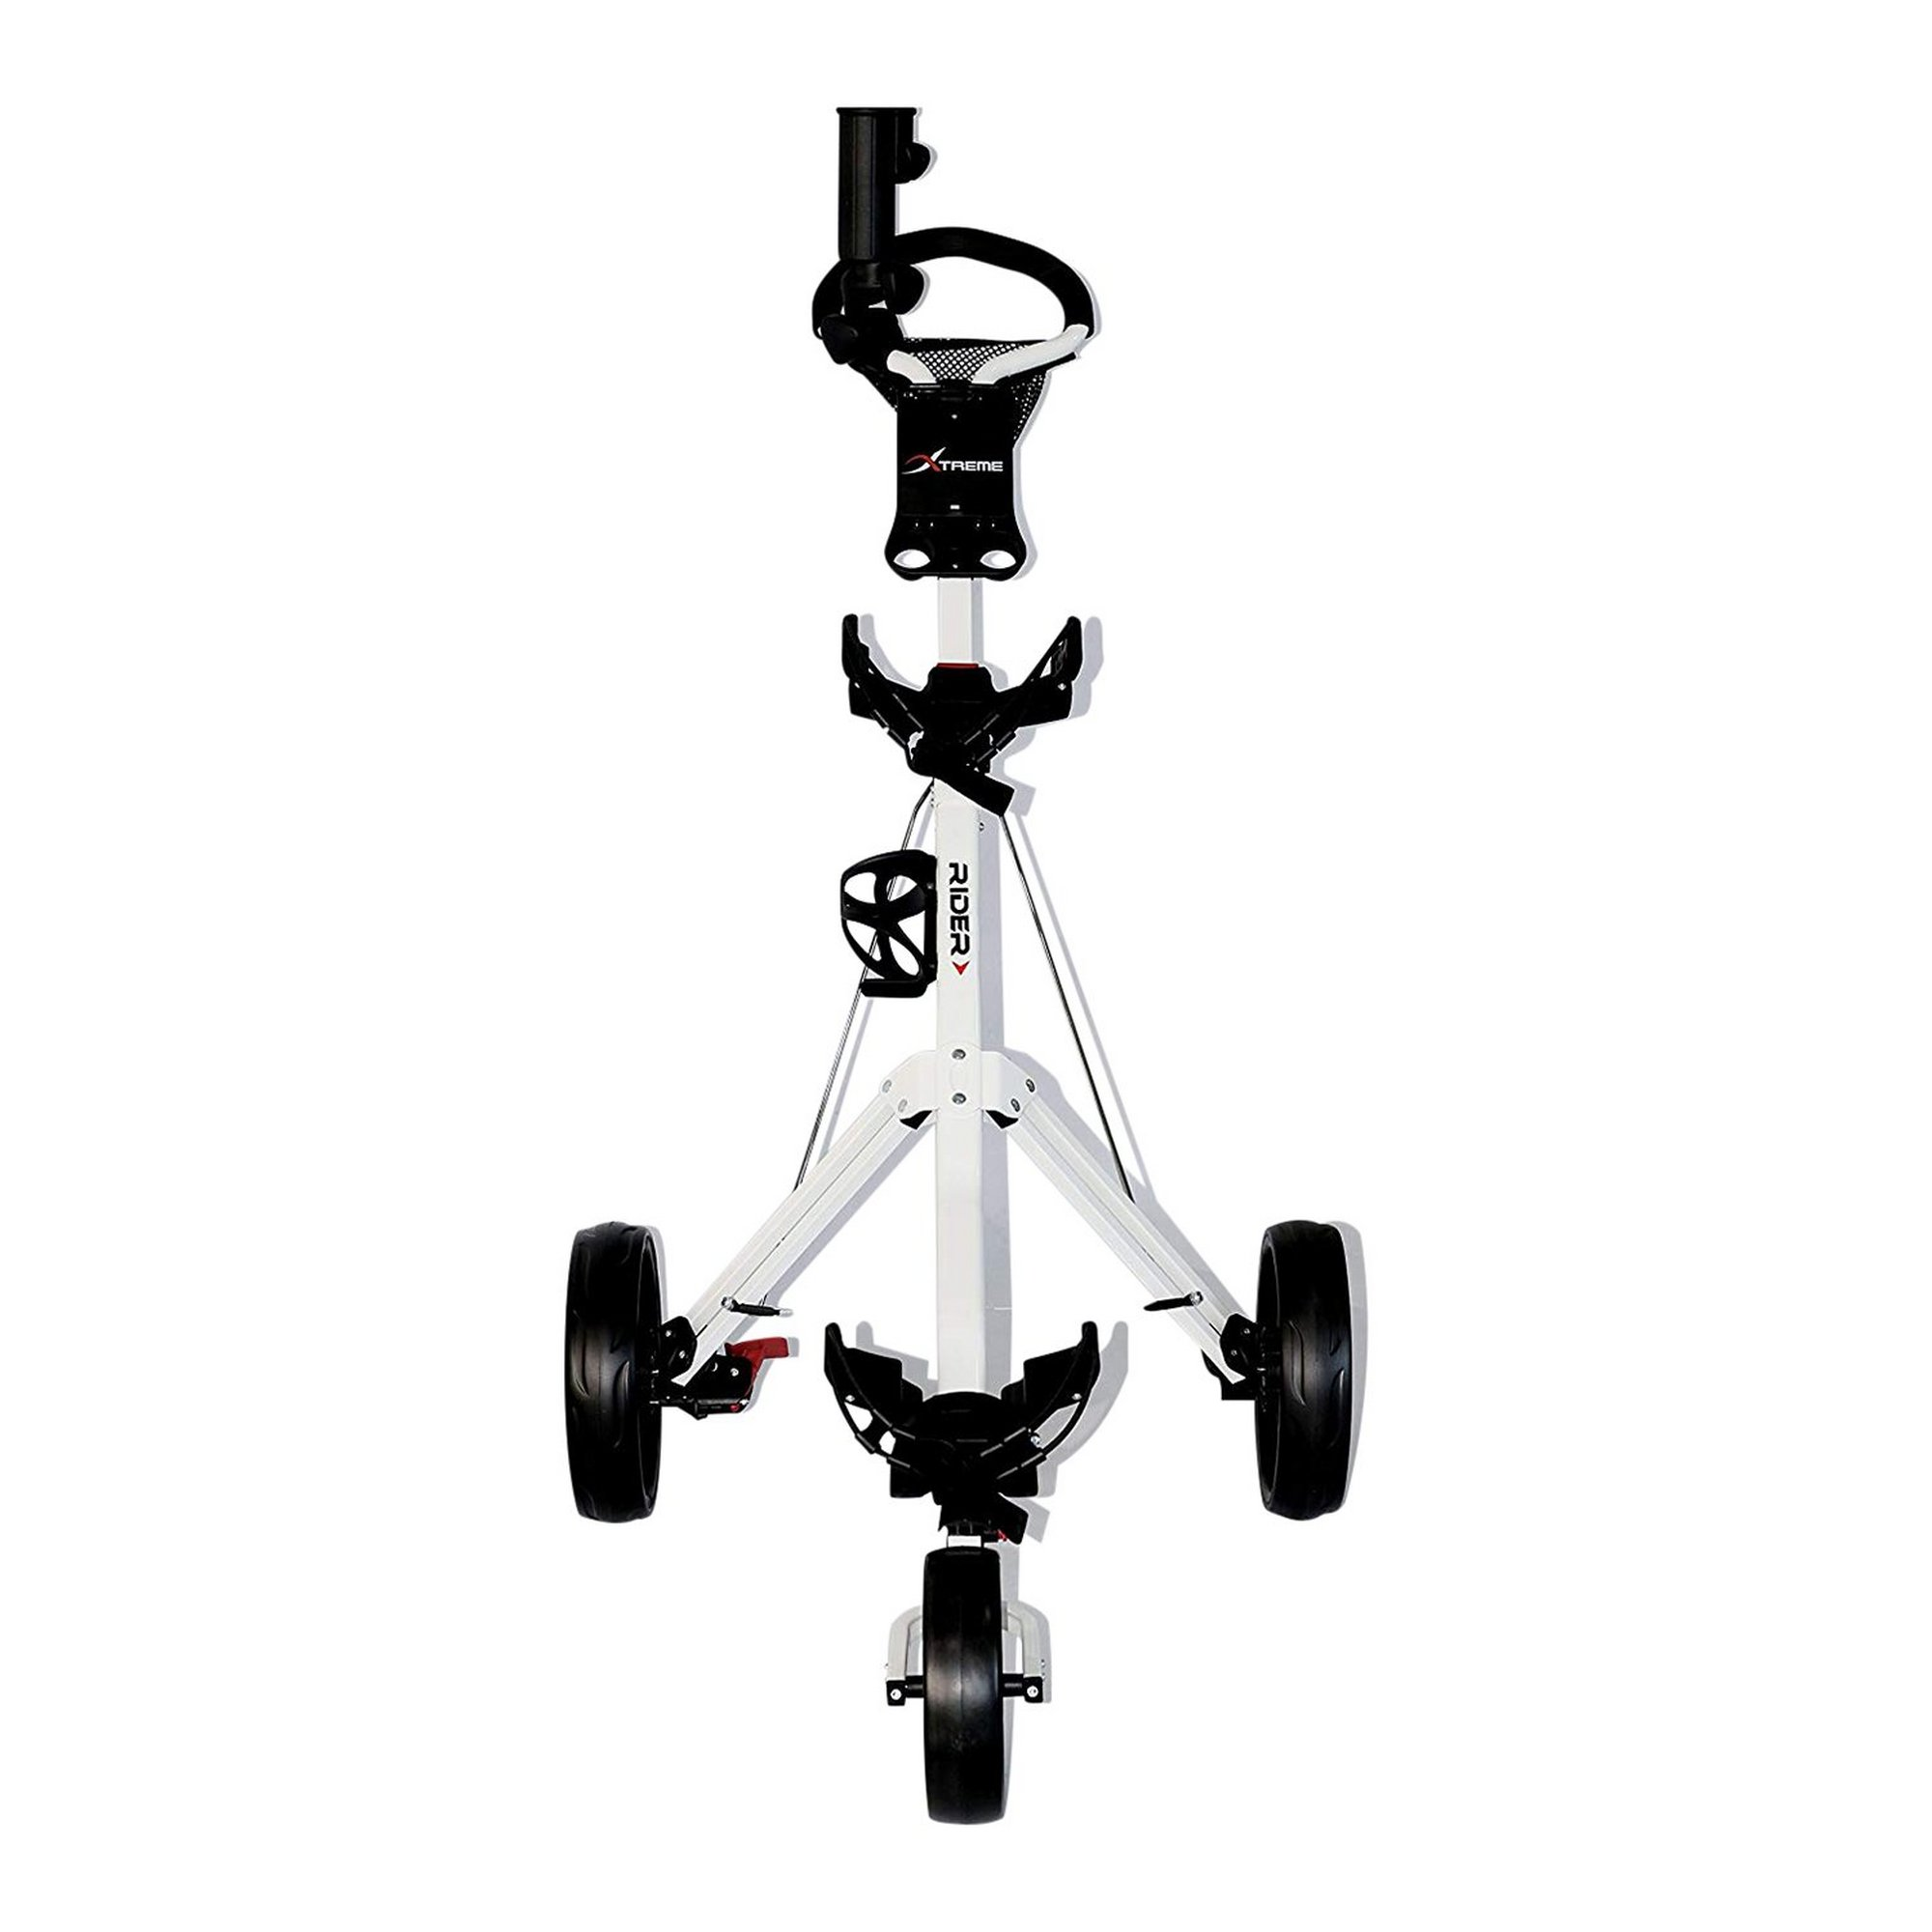 Image of Xtreme Rider Golf Trolley